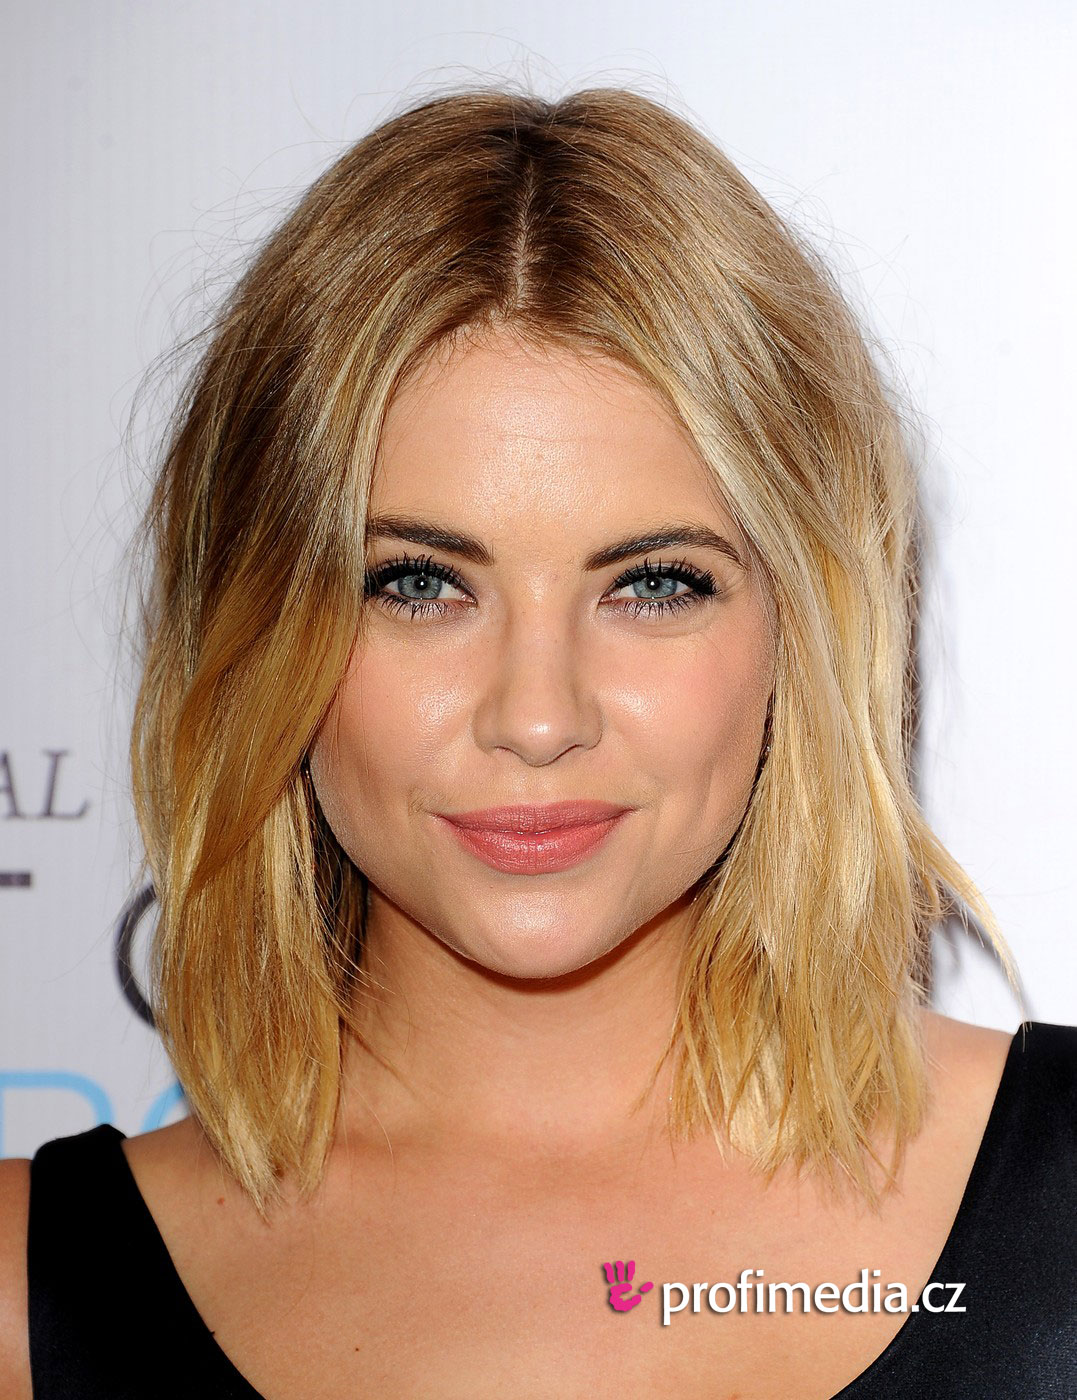 ashley benson frisur zum ausprobieren in efrisuren. Black Bedroom Furniture Sets. Home Design Ideas